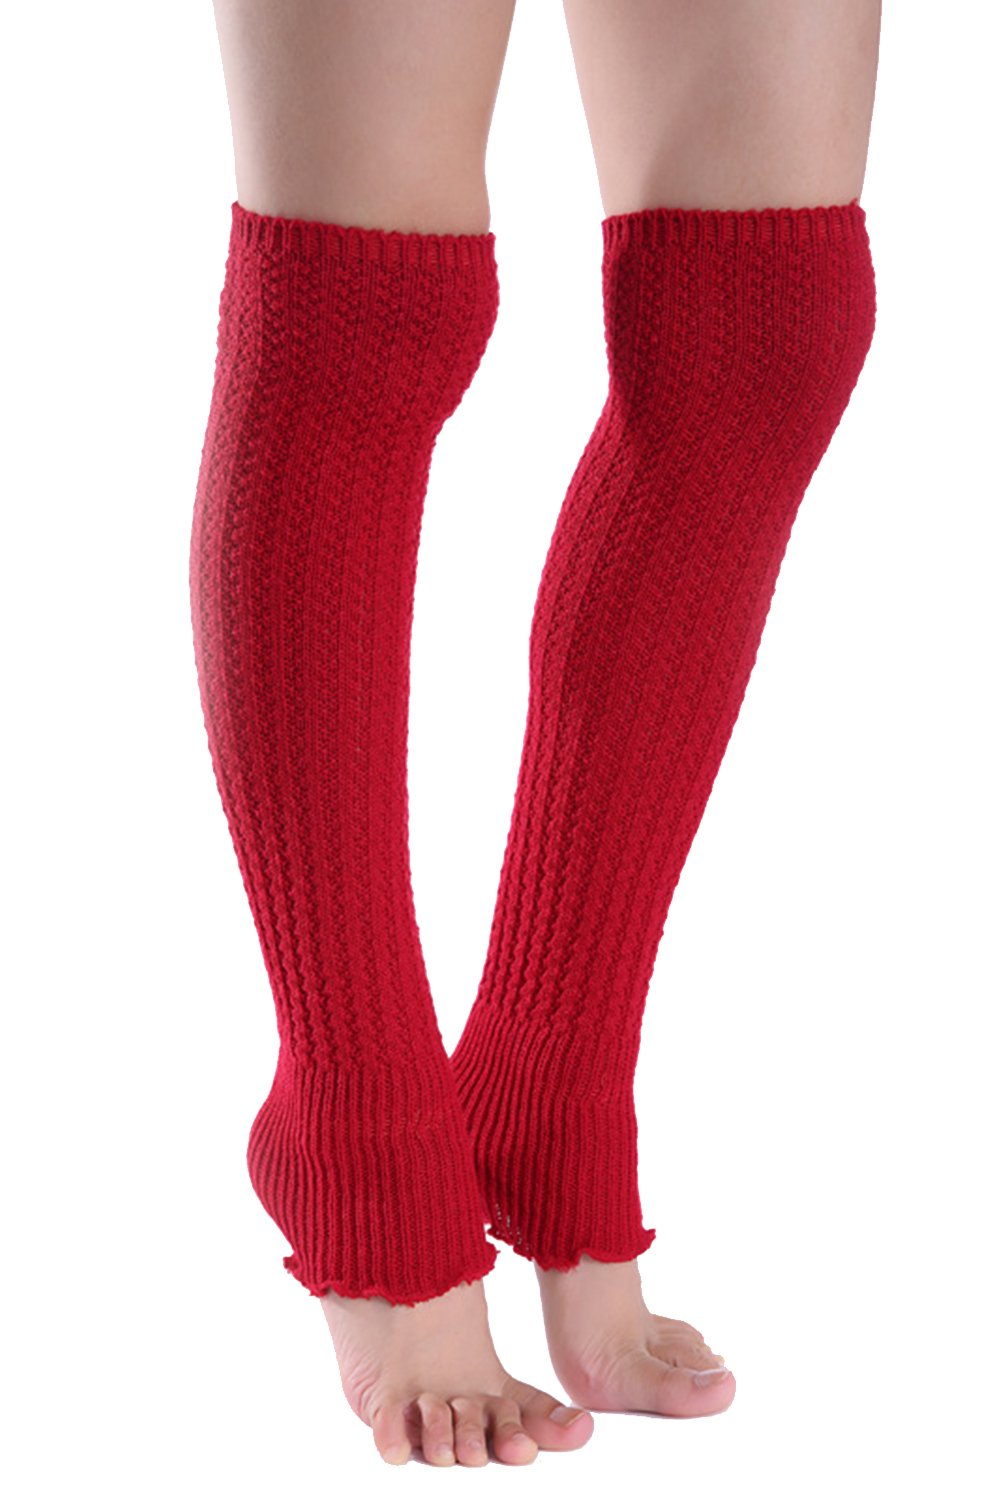 YACUN Women's Winter Cold Weather Solid Knit Long Leg Warmers Red F CAHT801Red_F